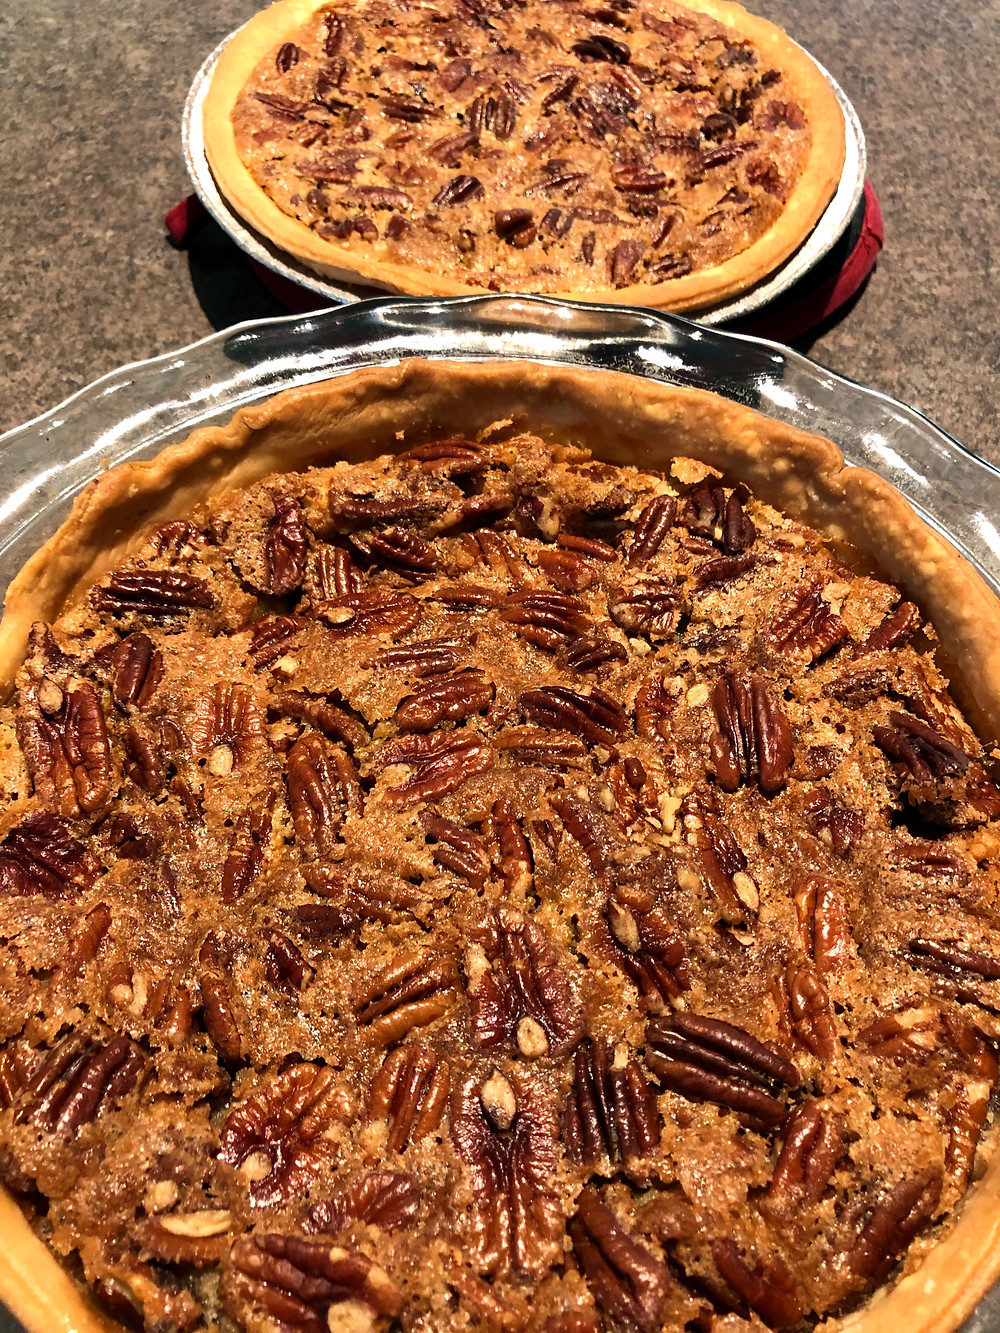 Two golden pecan pies sit on a counter, ready to cut and serve.